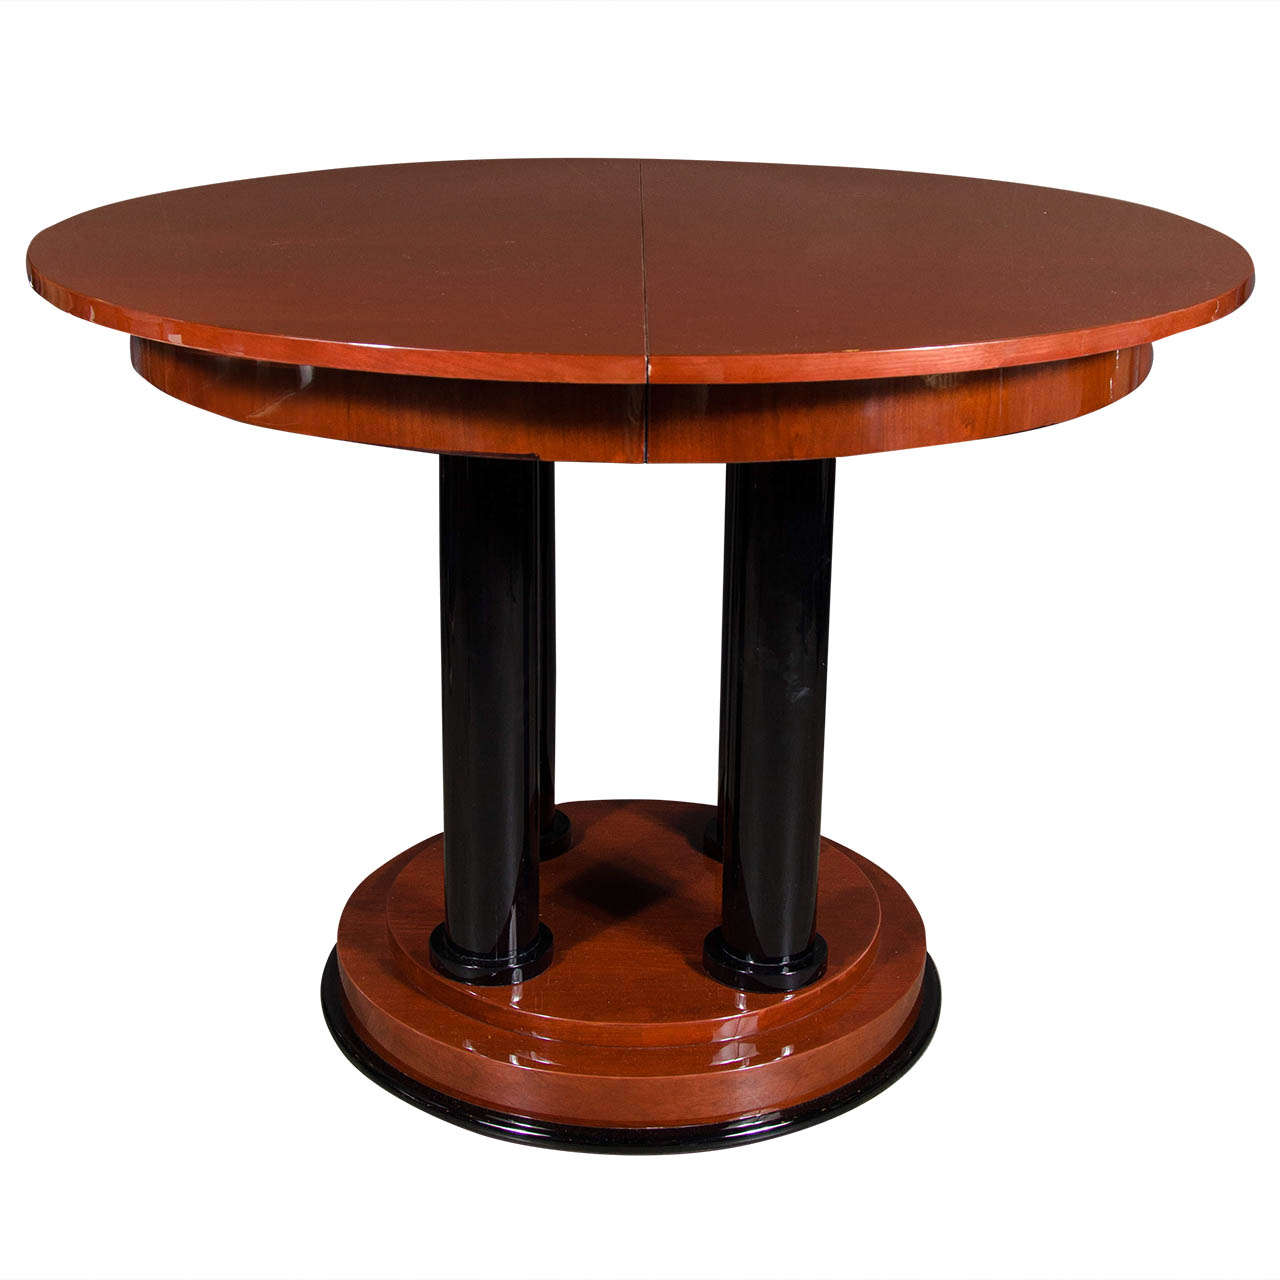 Elegant Art Deco Four Pedestal Center Hall Table Dining